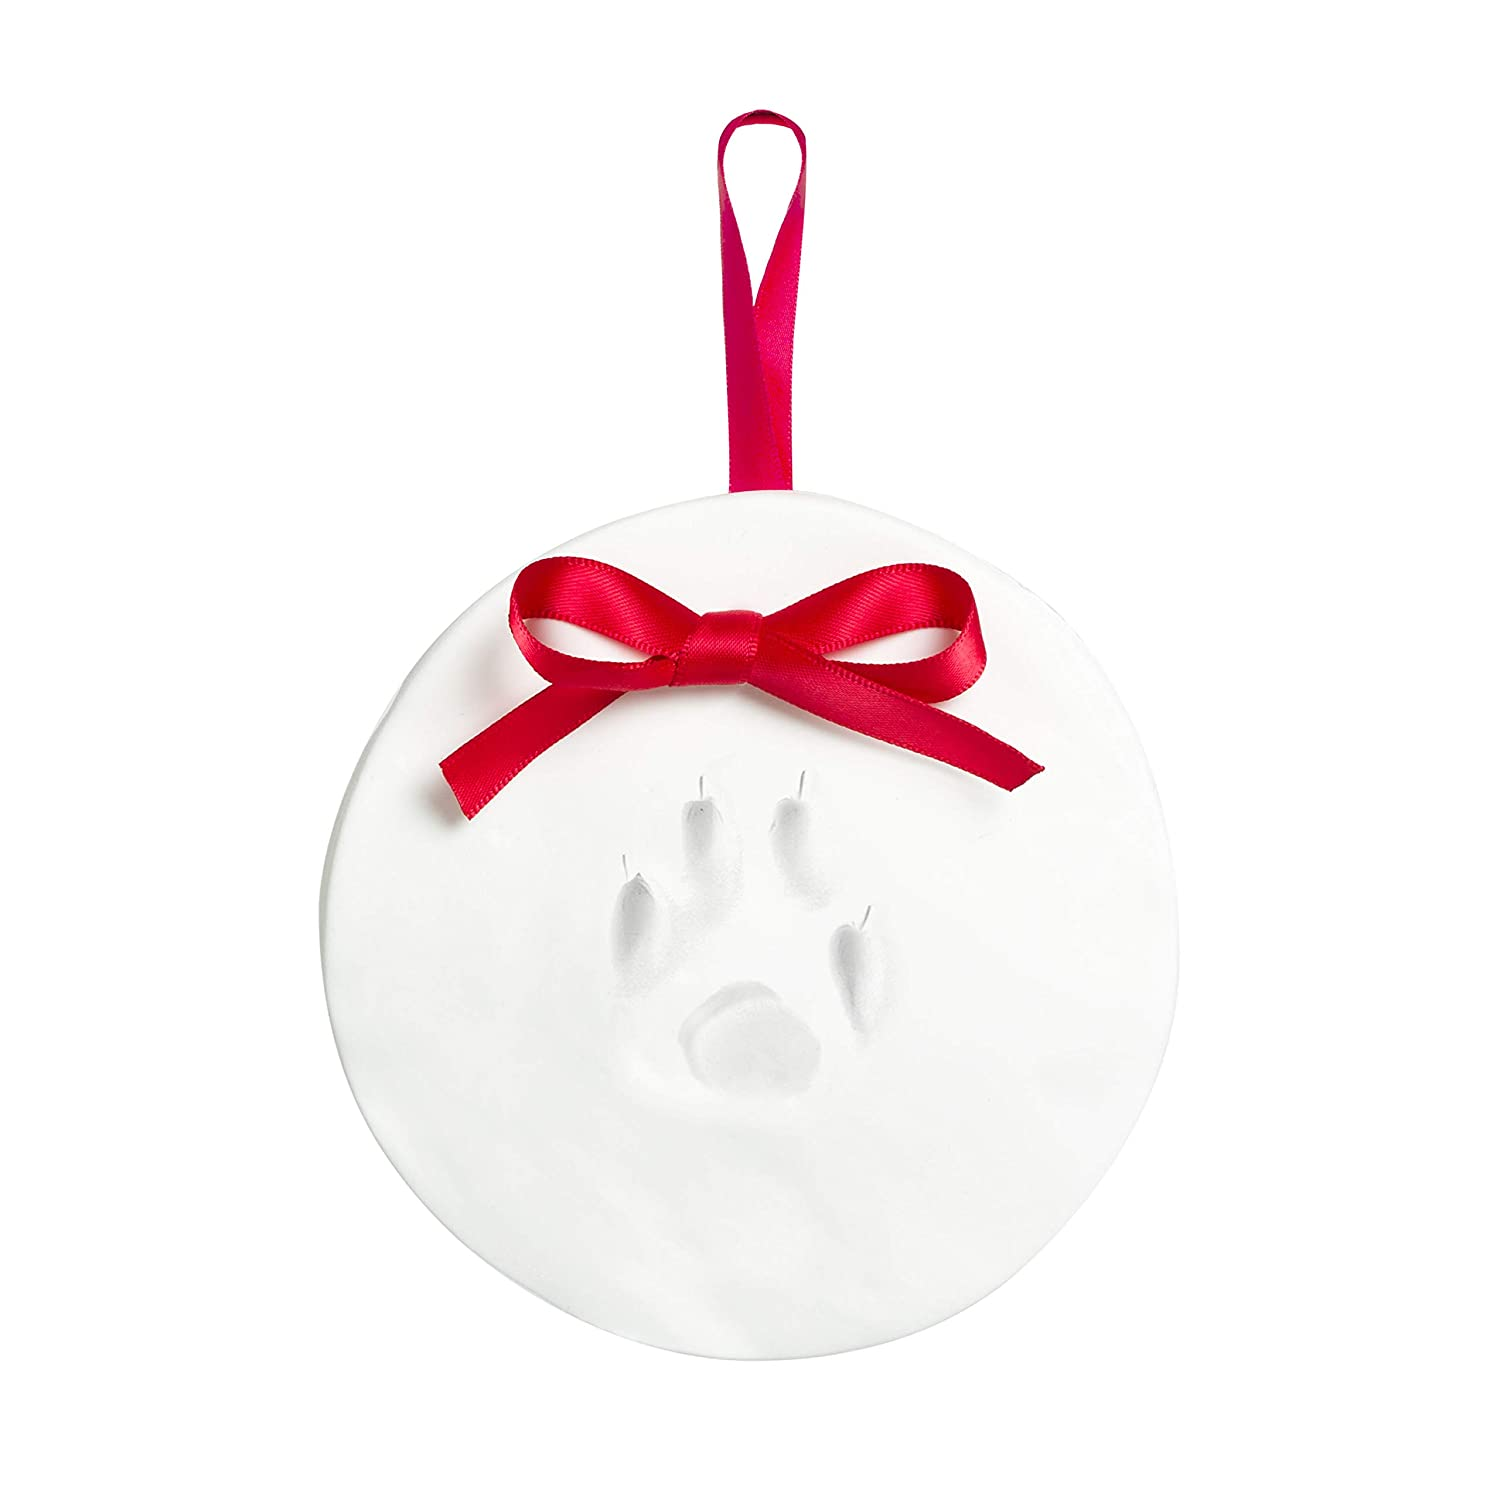 Tiny Ideas Pet Paw Prints Dog or Cat DIY Holiday Ornament, White Pearhead Inc. 96159